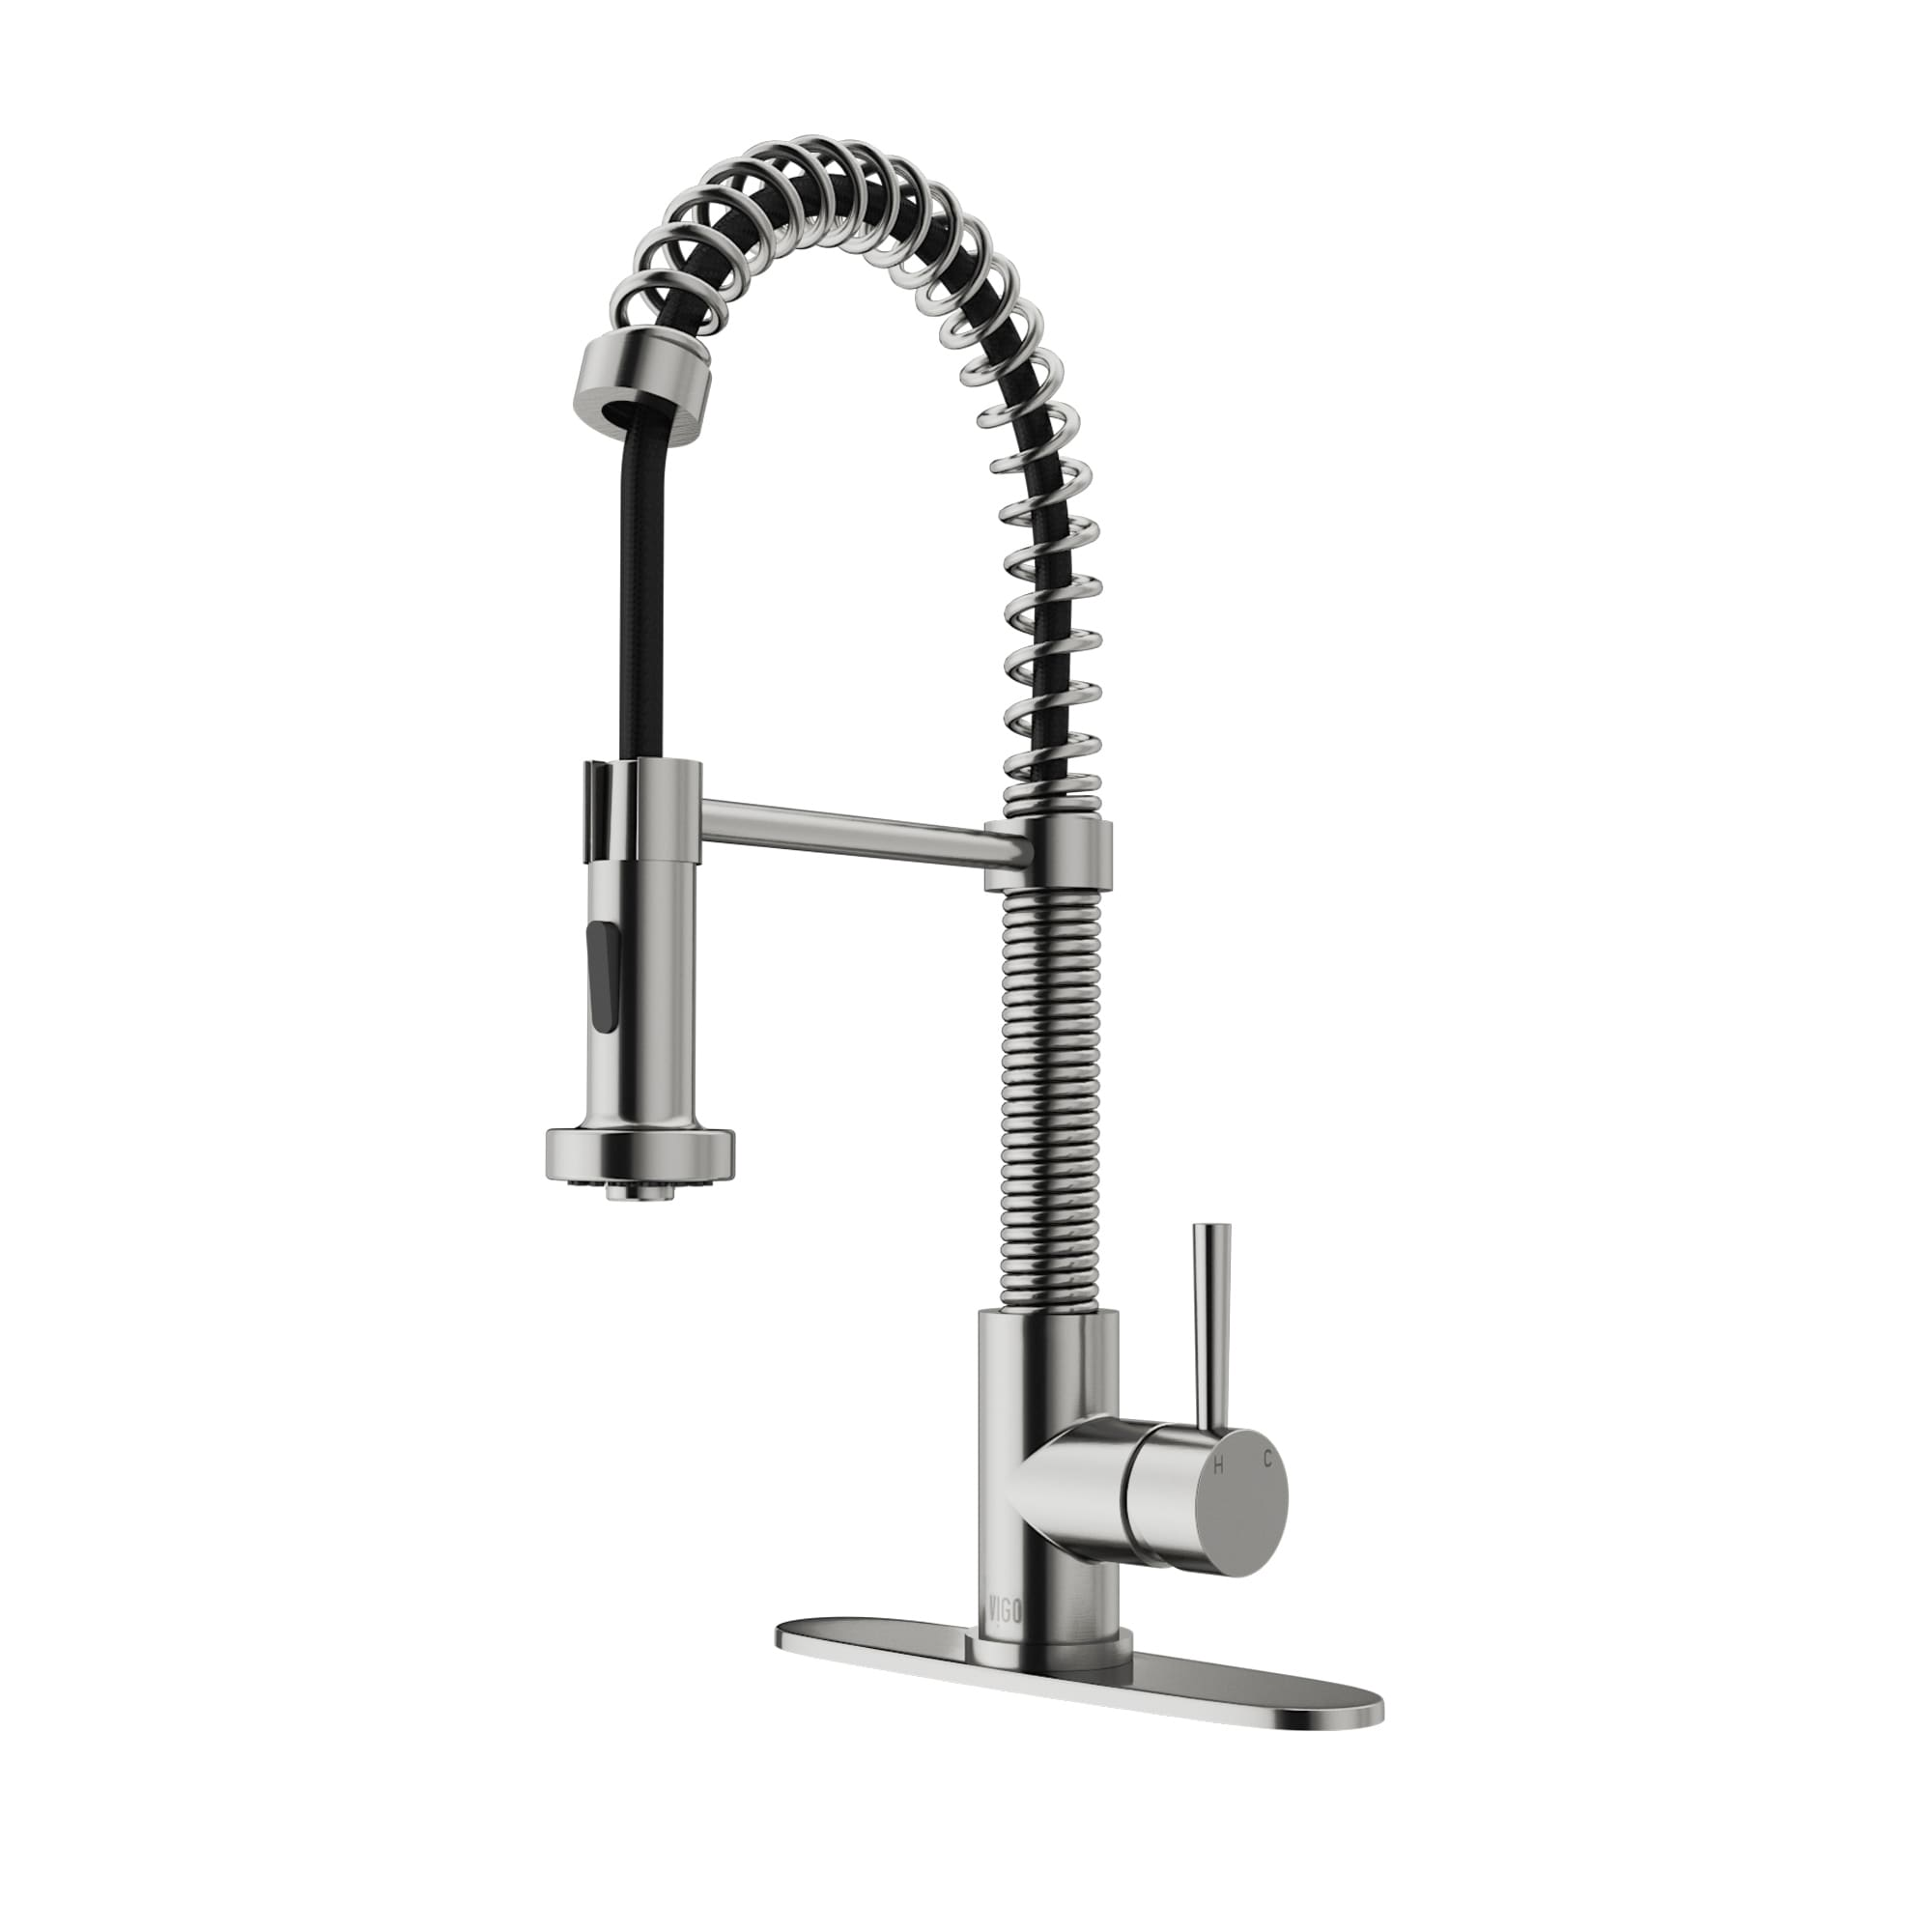 faucets side spray with ip ultra faucet kitchen stainless handle walmart com fadb steel